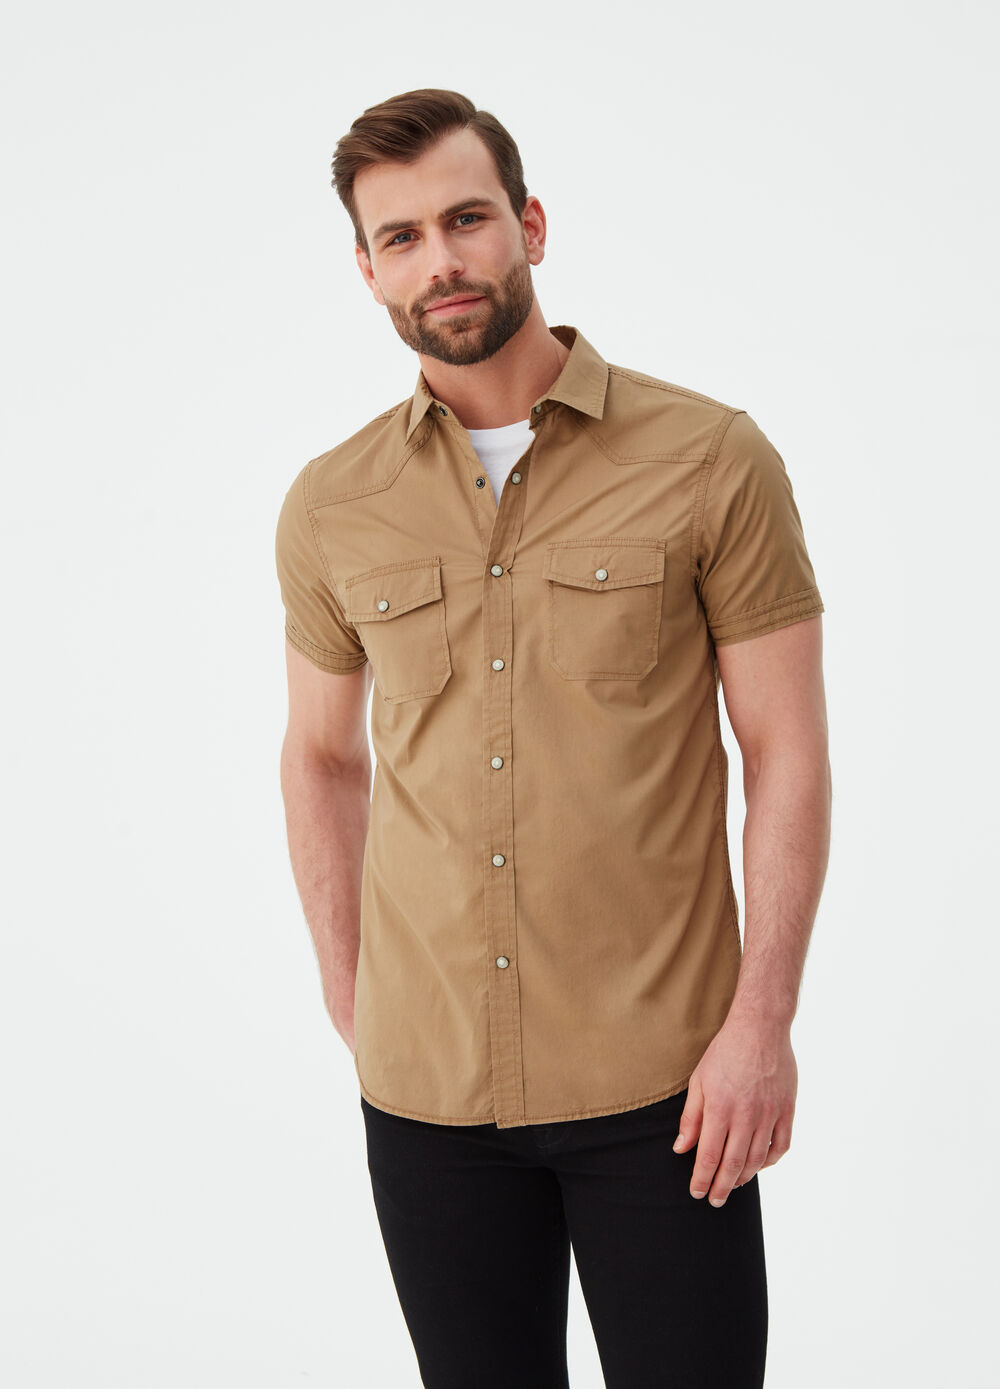 Slim-fit shirt with short sleeves